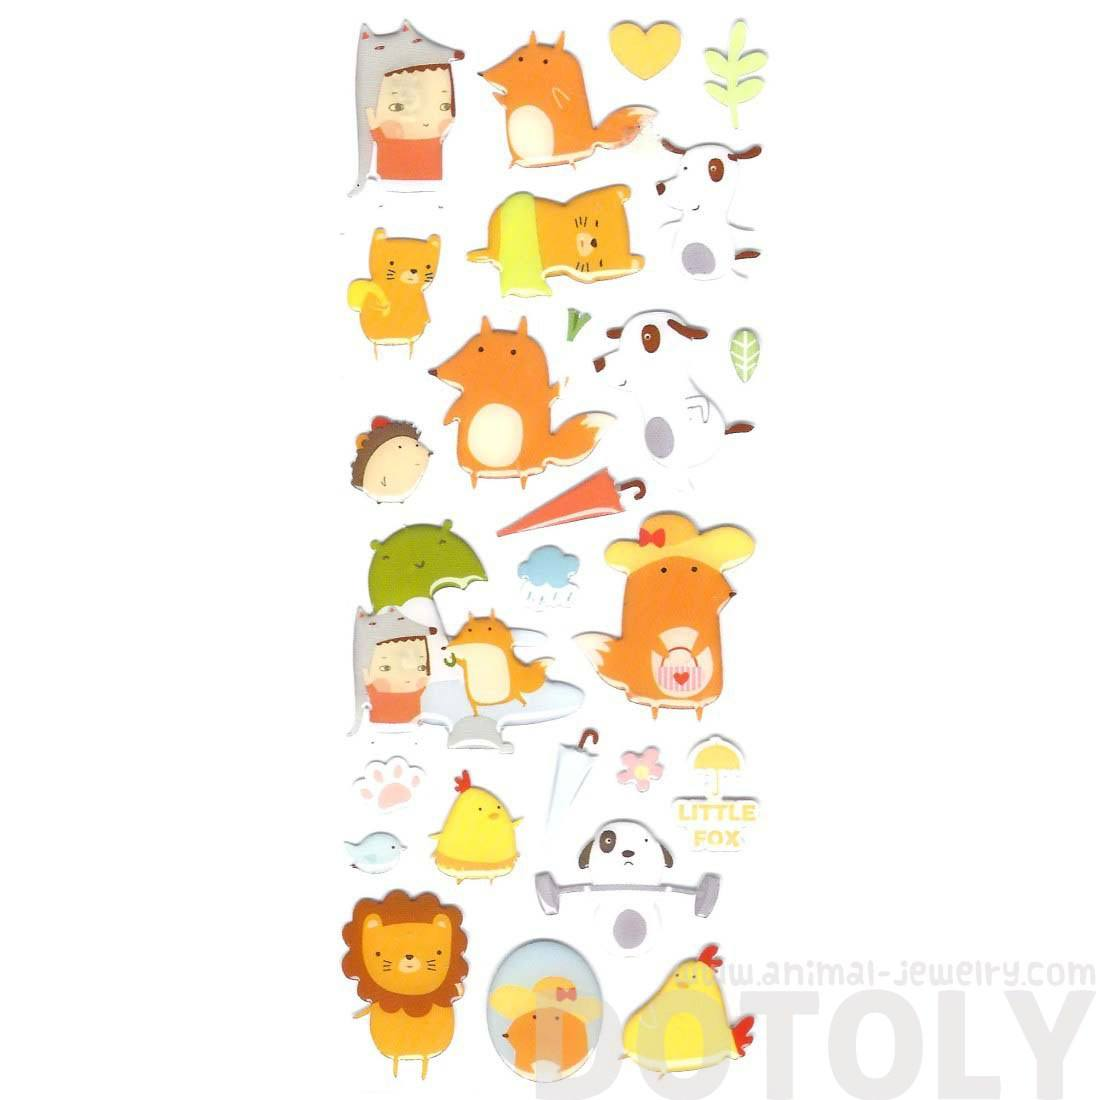 Puppies Lions and Foxes Shaped Animal Jelly Stickers for Scrapbooking